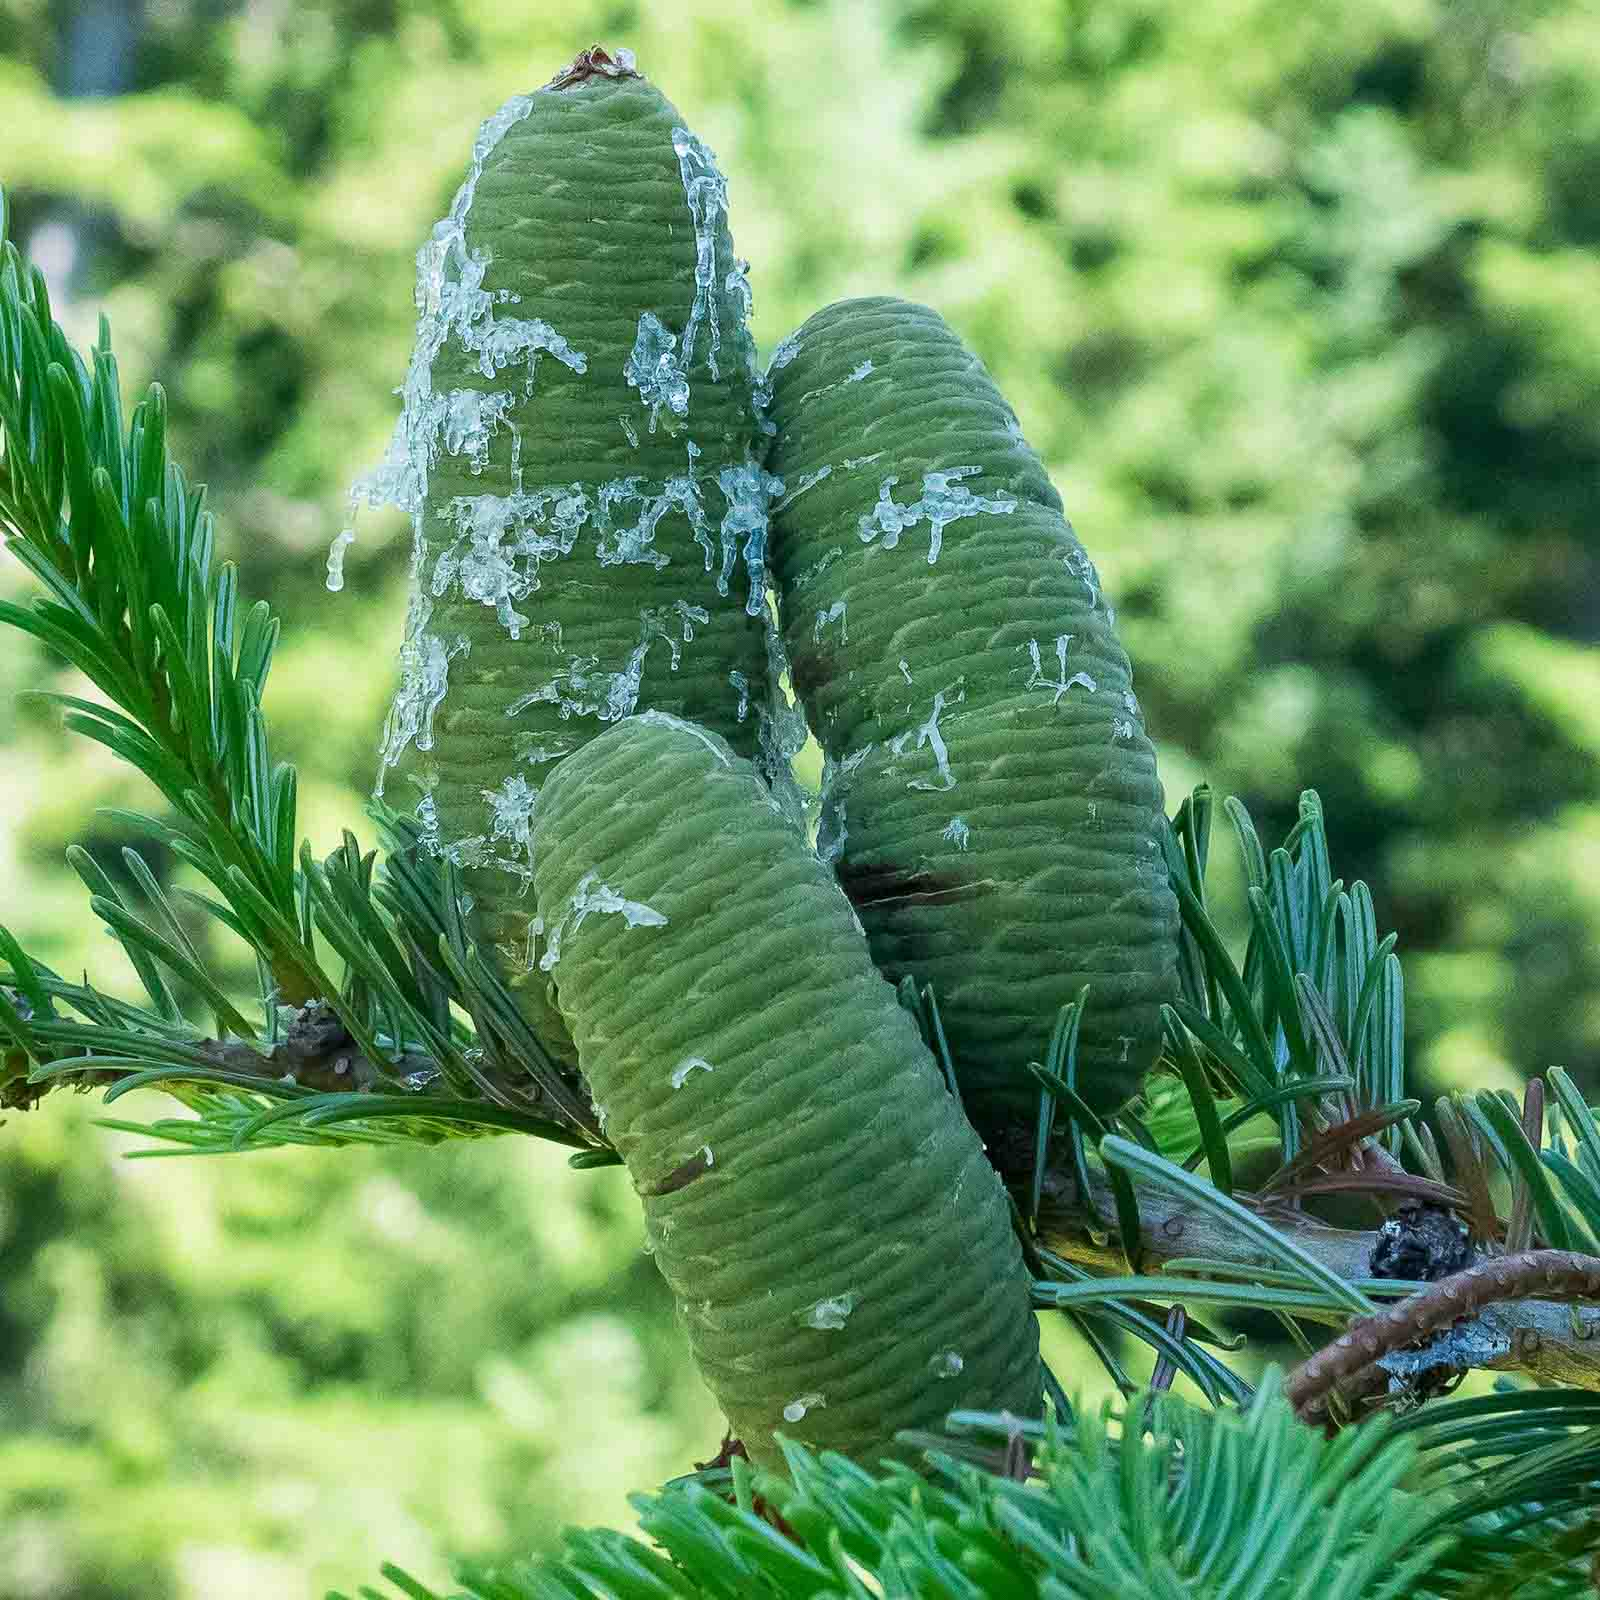 grand fir cones covered with sap